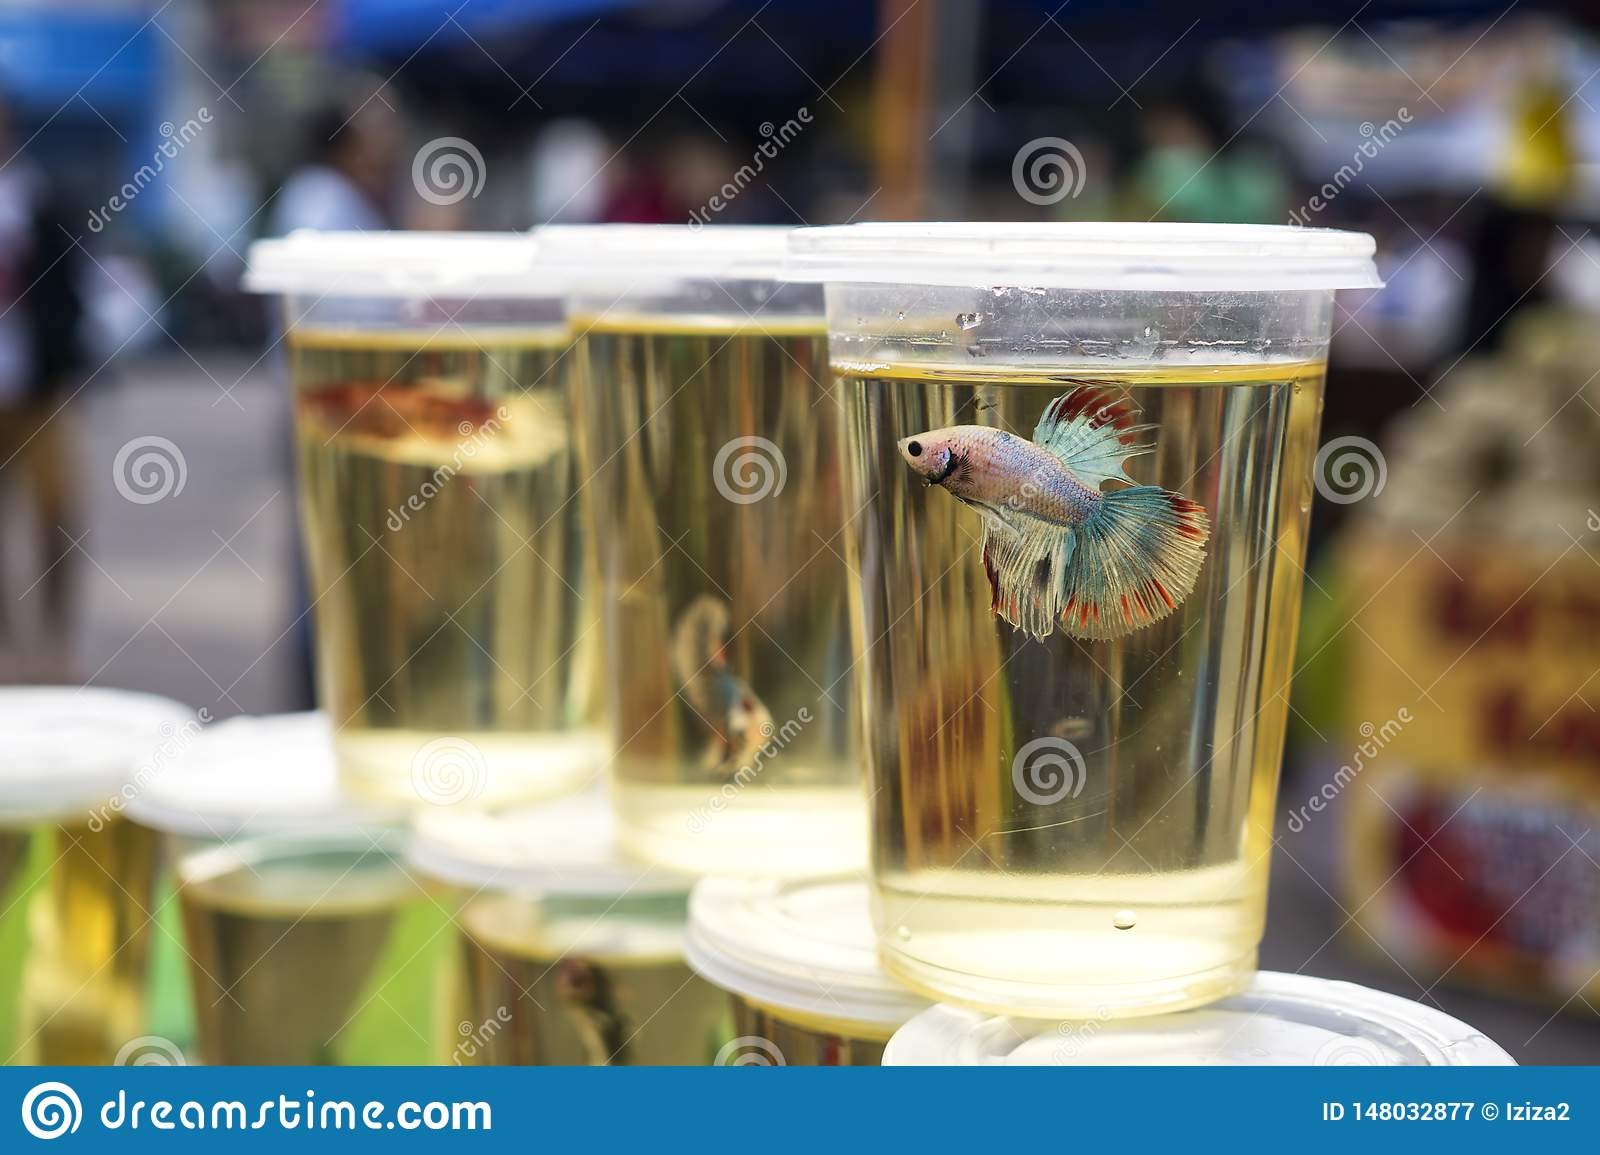 Betta fighting fish on display